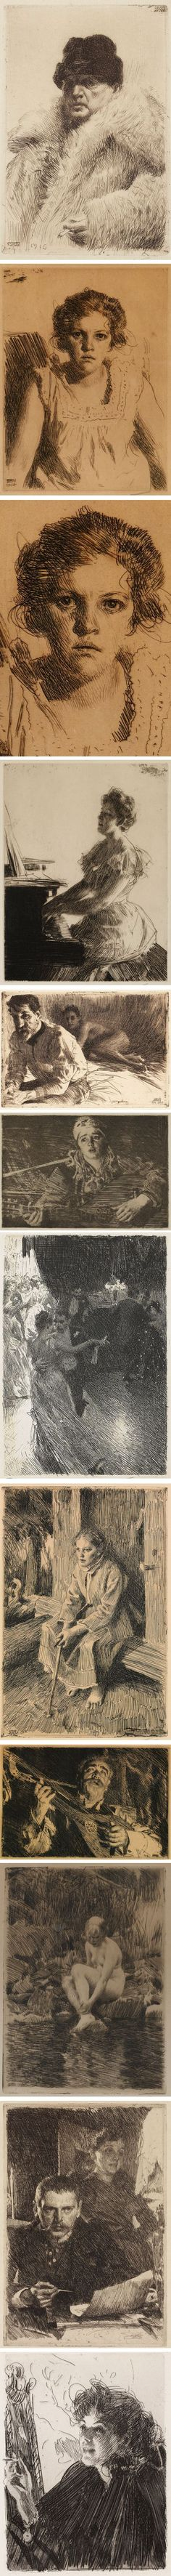 Etchings by Anders Zorn (1860-1920, Swedish painter)